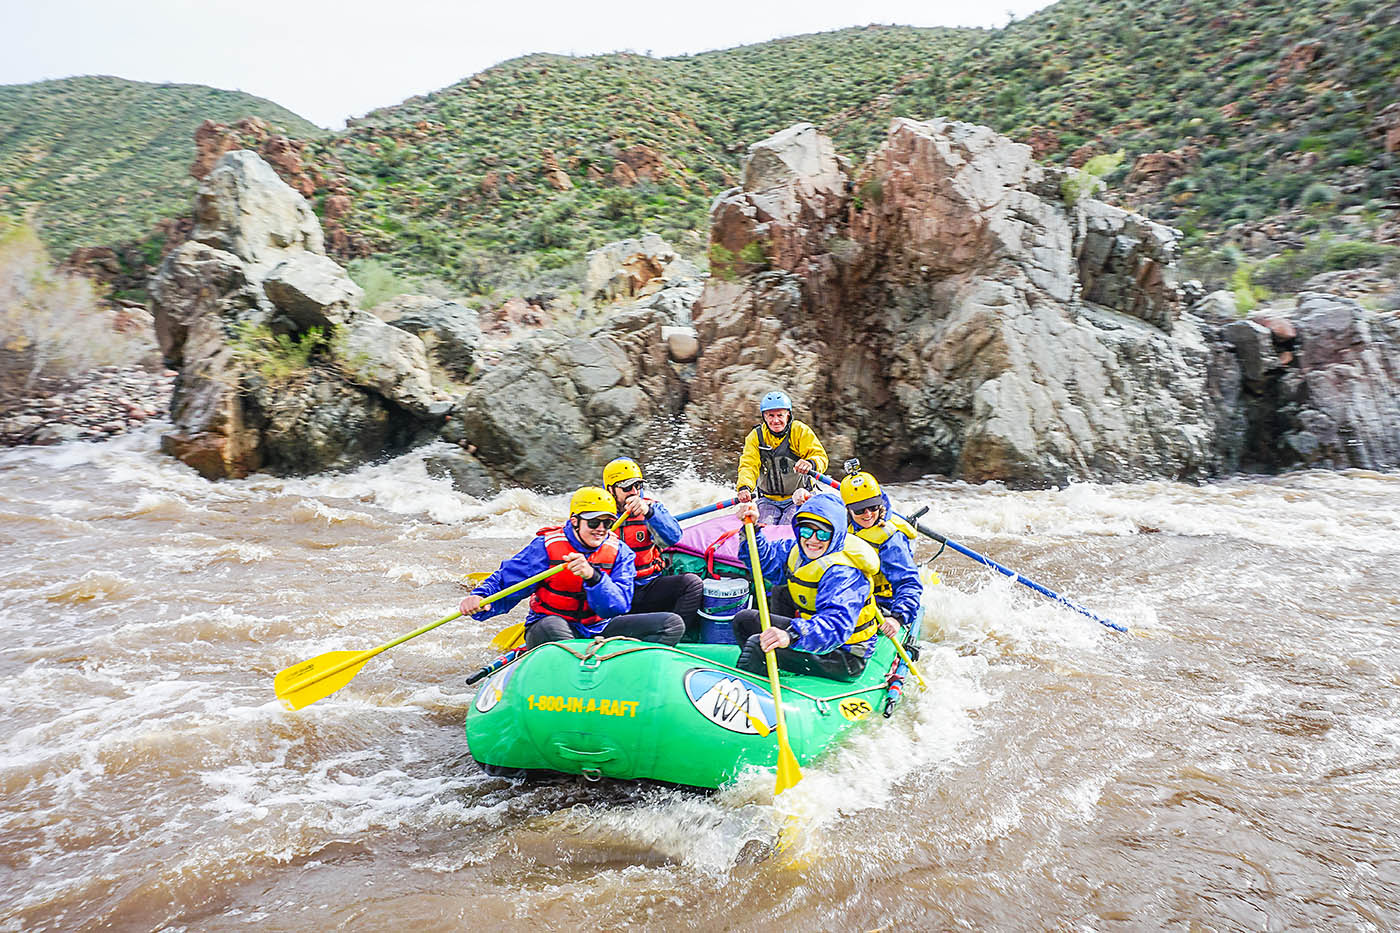 Rafting the Salt River near Phoenix, AZ